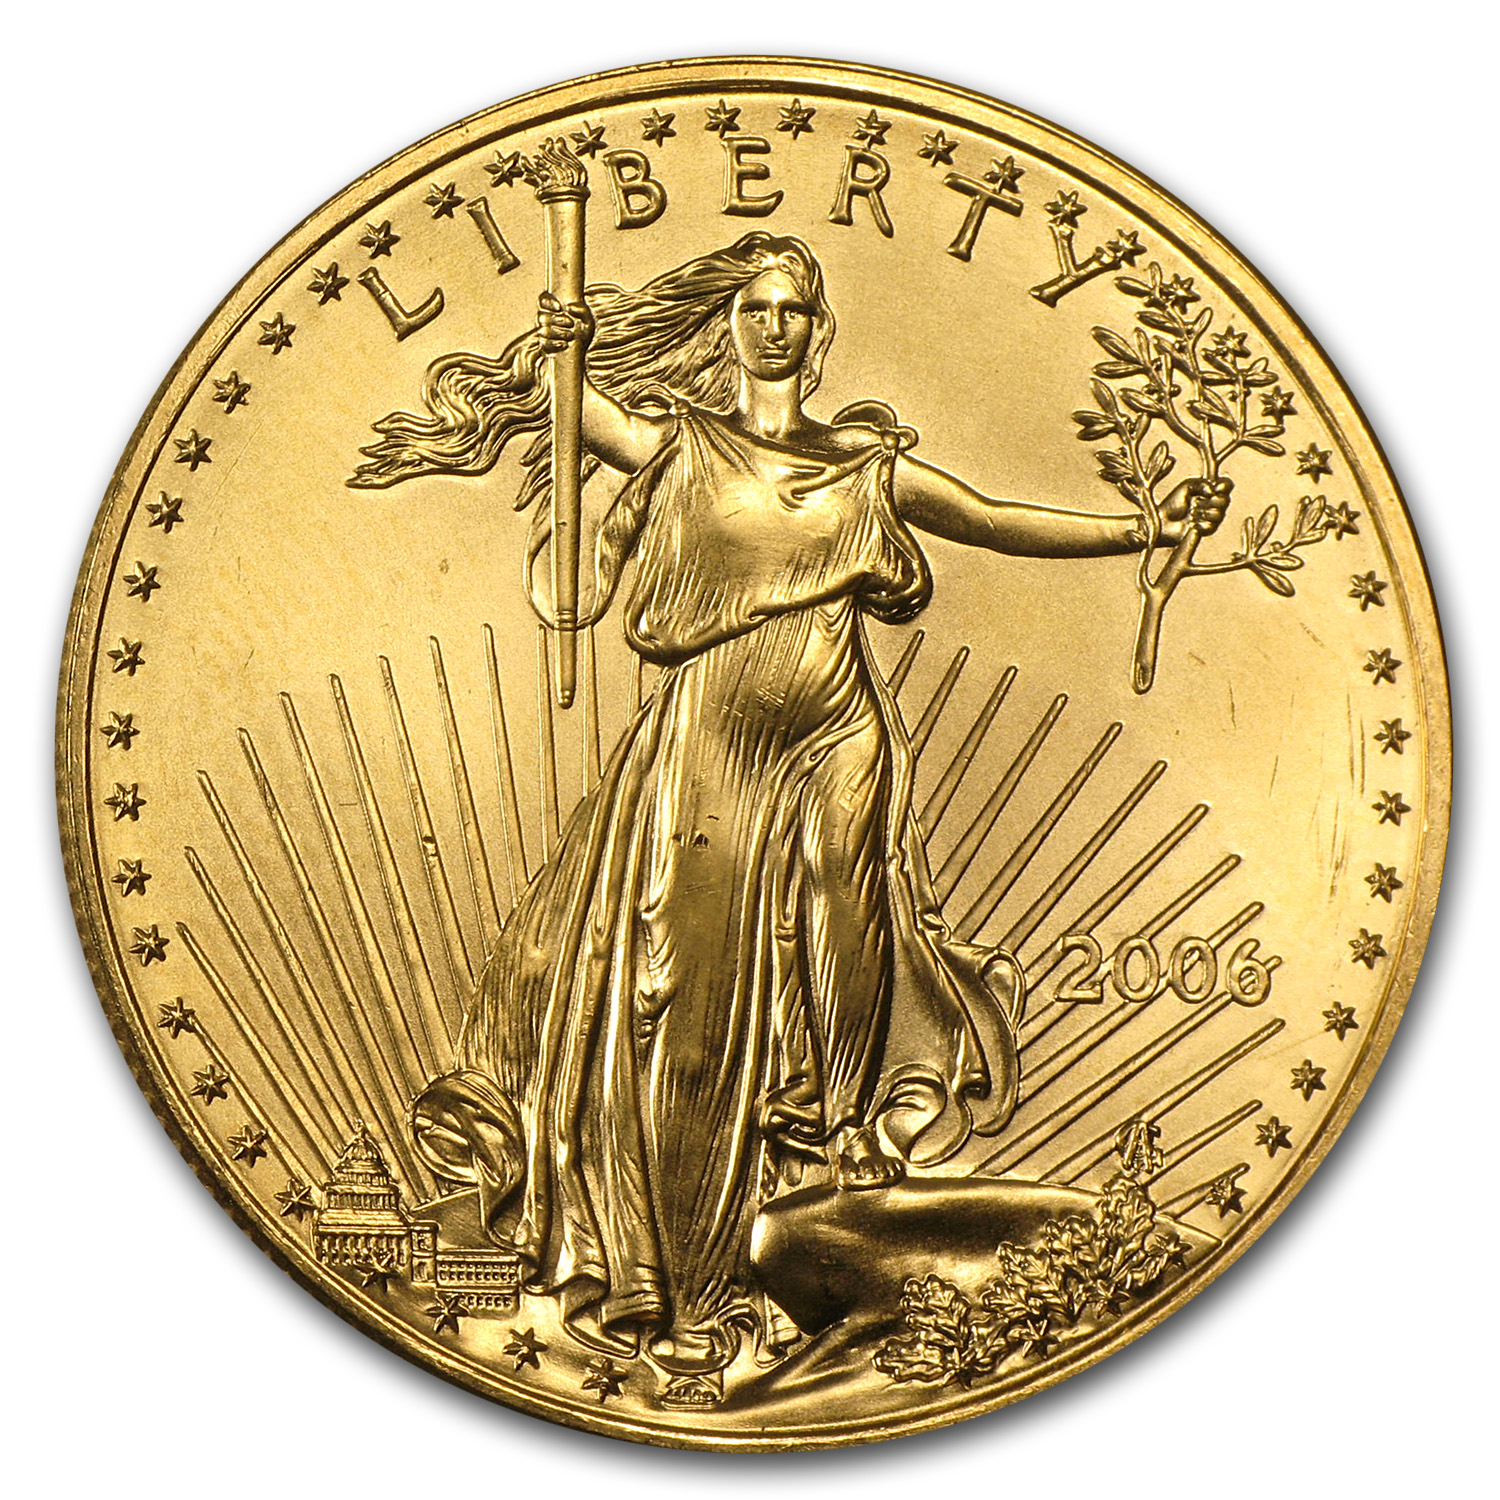 2006 1 oz Gold American Eagle (BU)